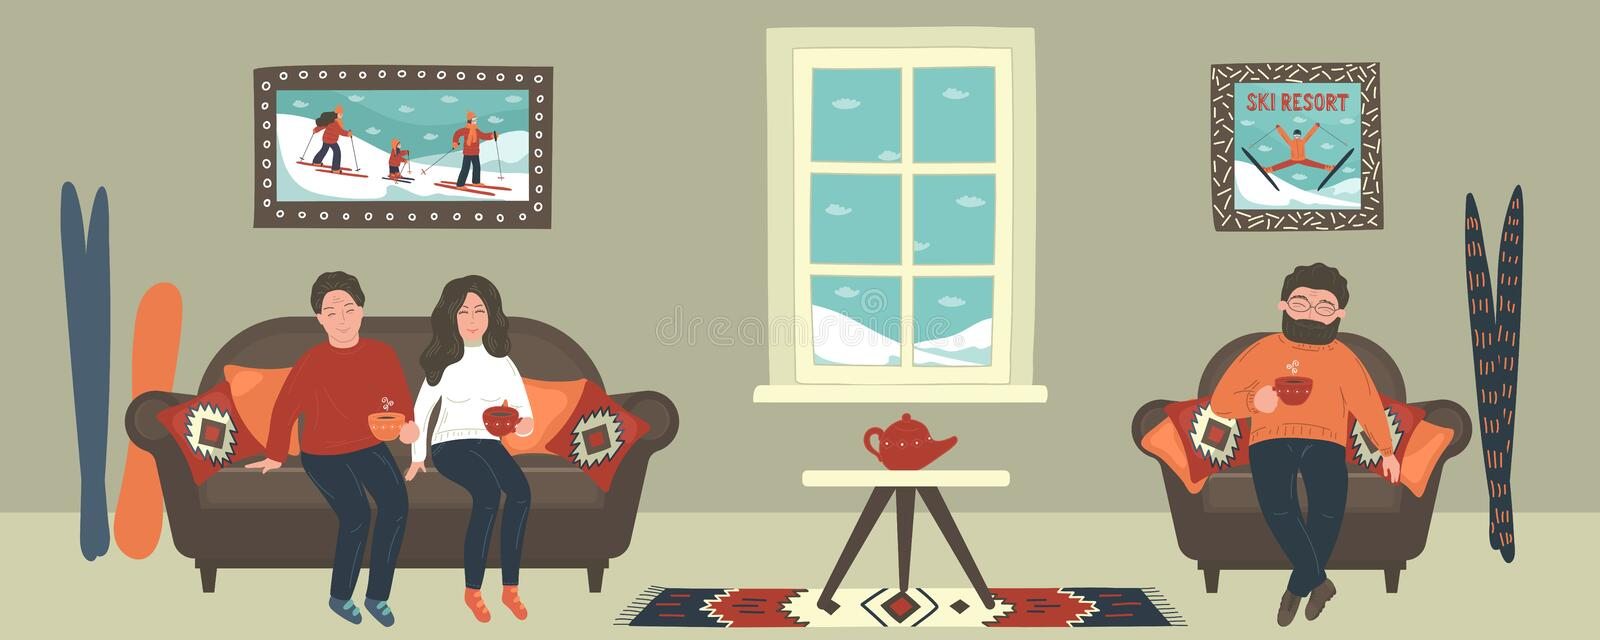 Friends drinking hot tea in cozy room, appartment or cafe in winter. royalty free illustration